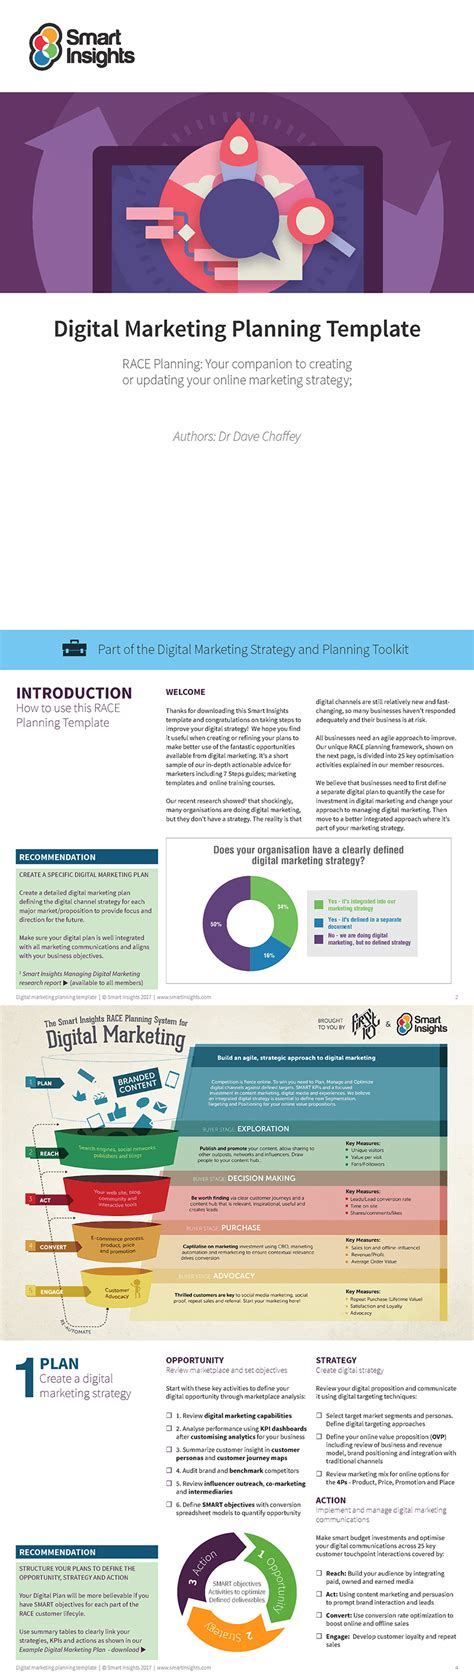 Free Digital Marketing Plan Template Smart Insights Digital Marketing Plan Template Free